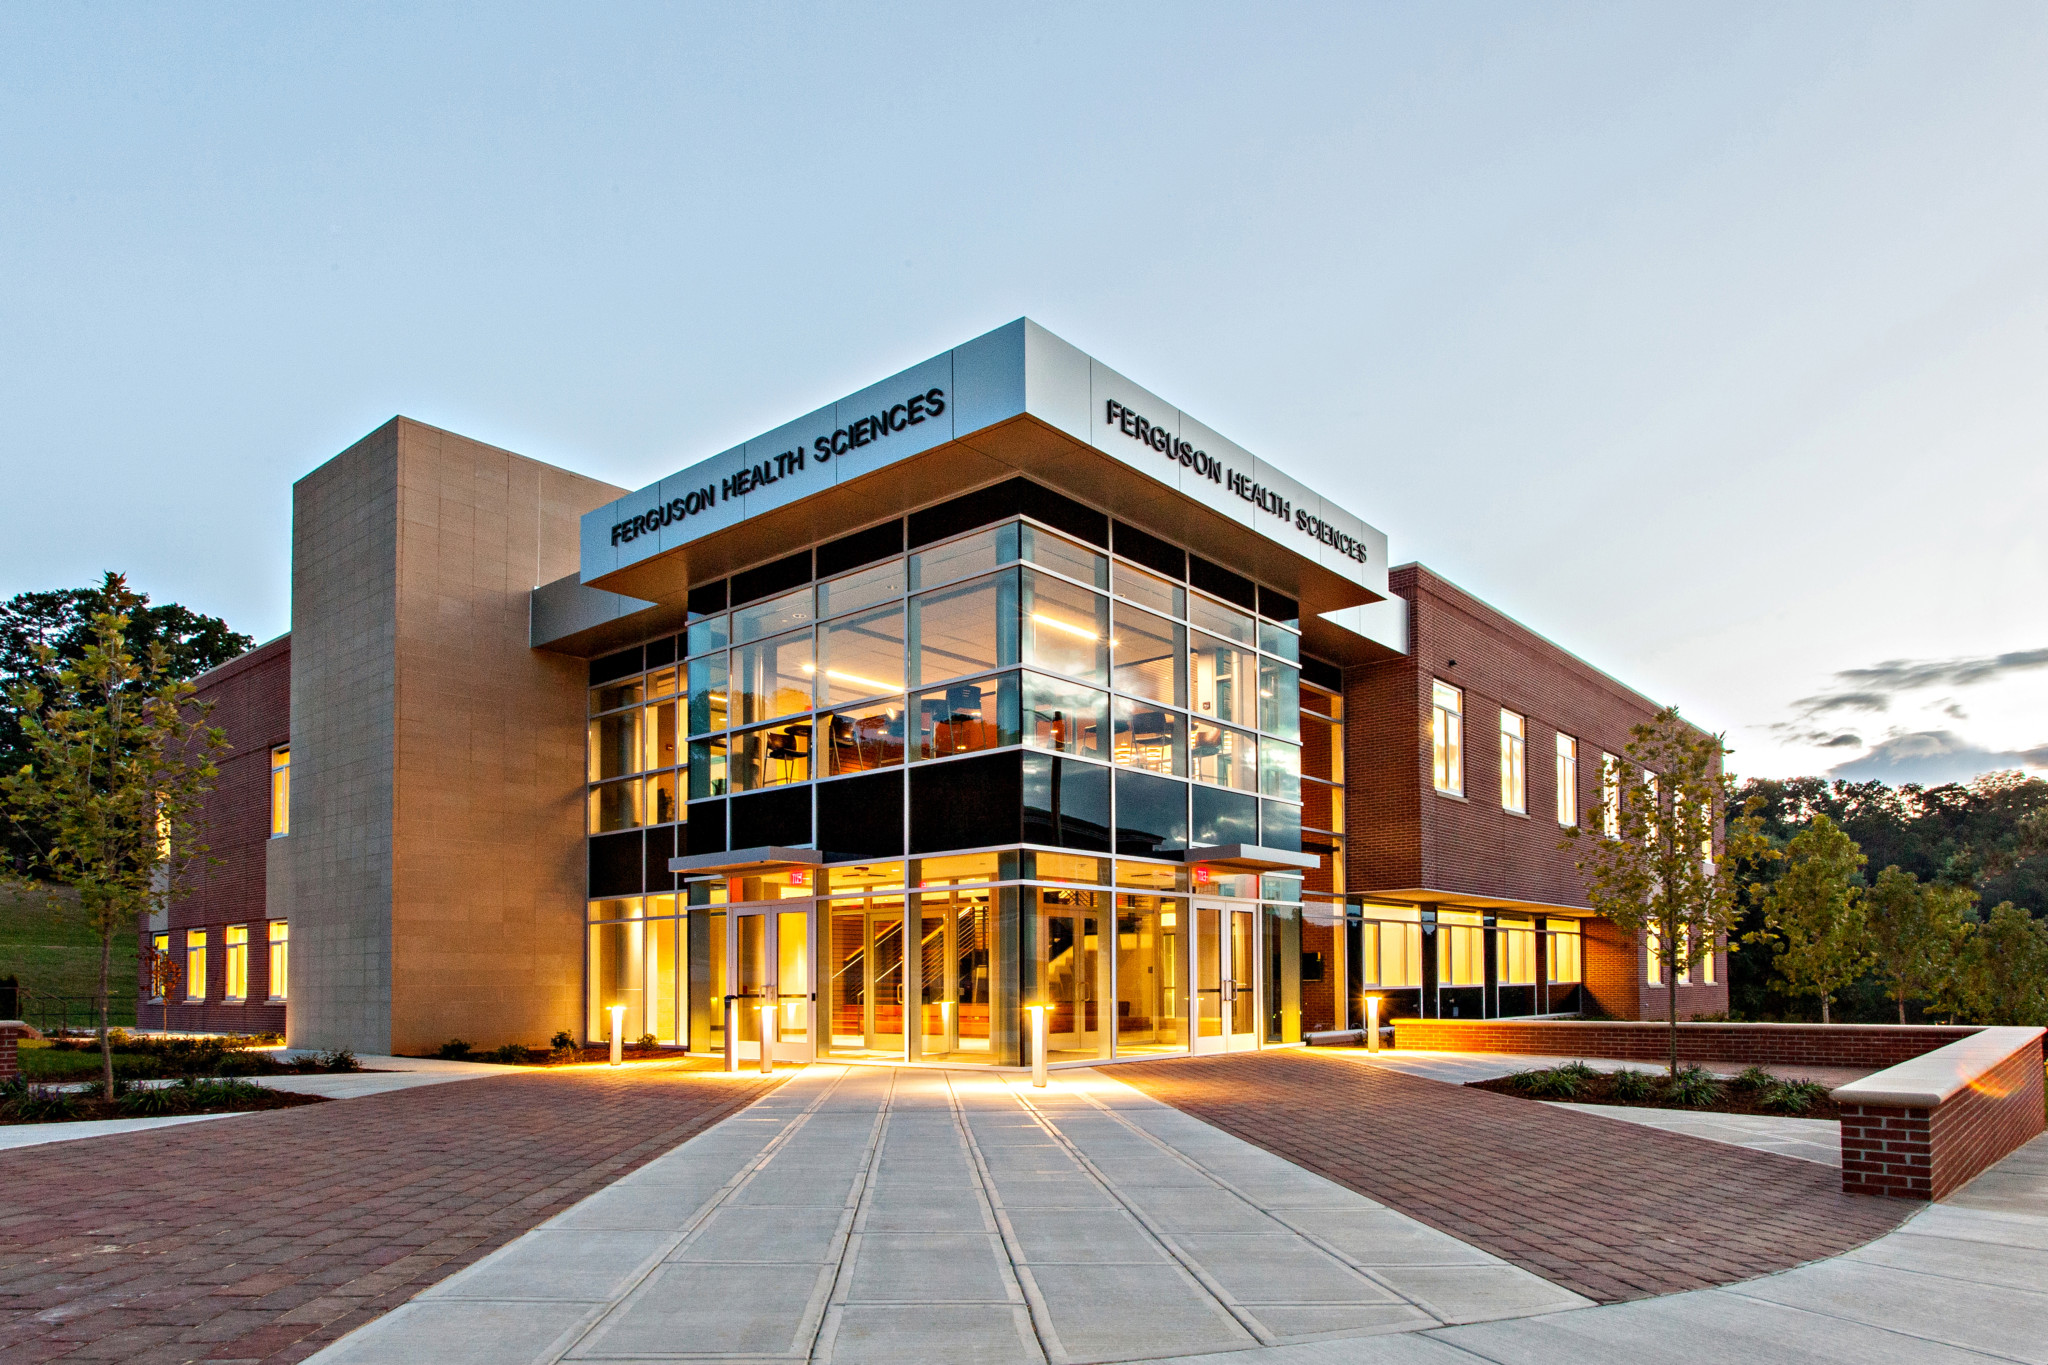 Mars Hill Ferguson Health Sciences Center